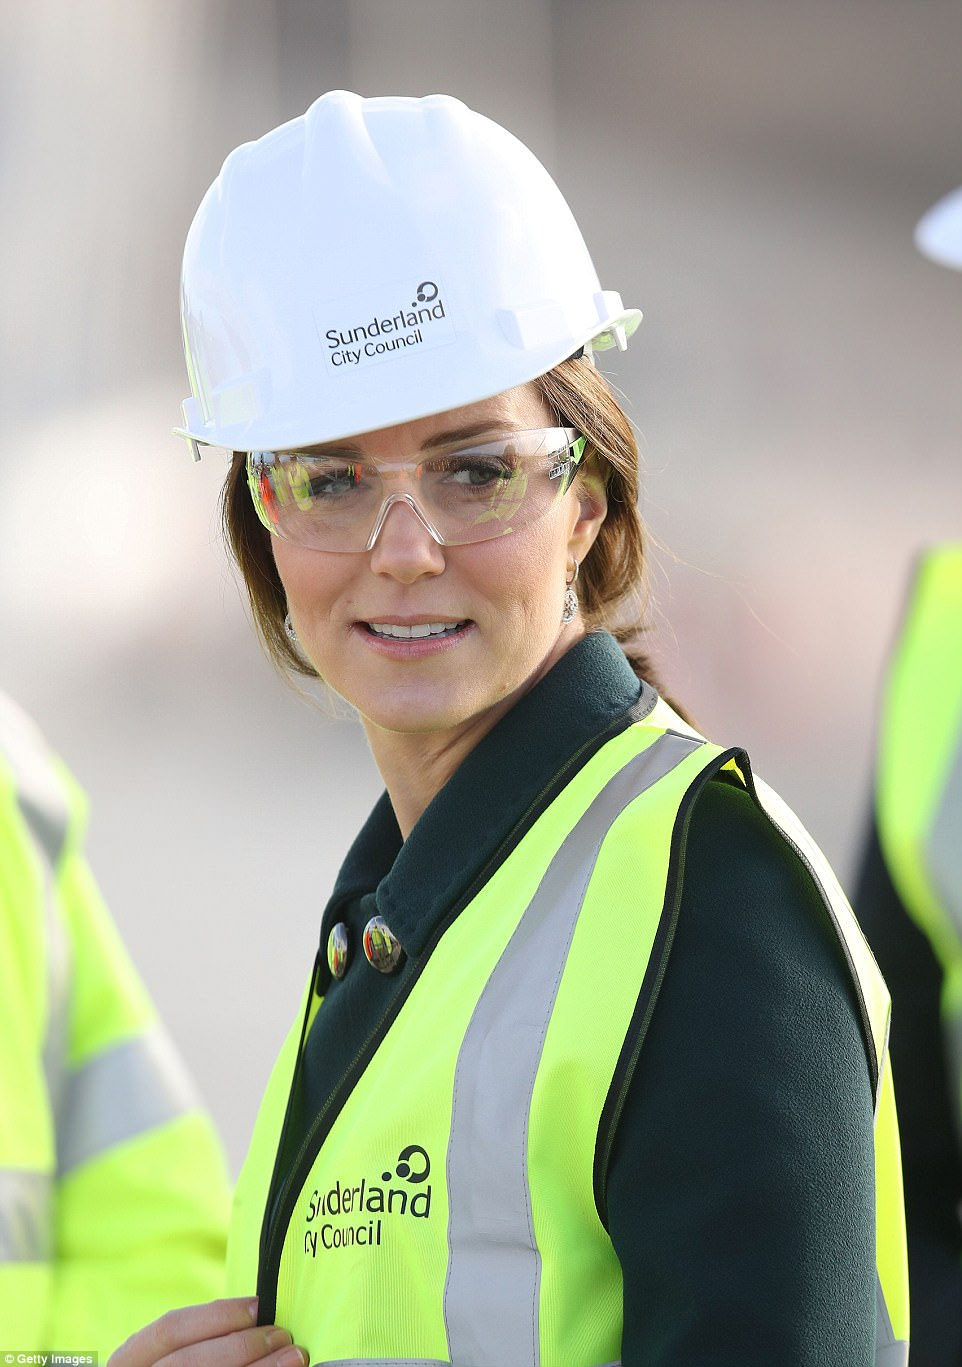 The Duchess of Cambridge donned a hard-hat and a high-vis vest as she visited the site of a new bridge in Sunderland